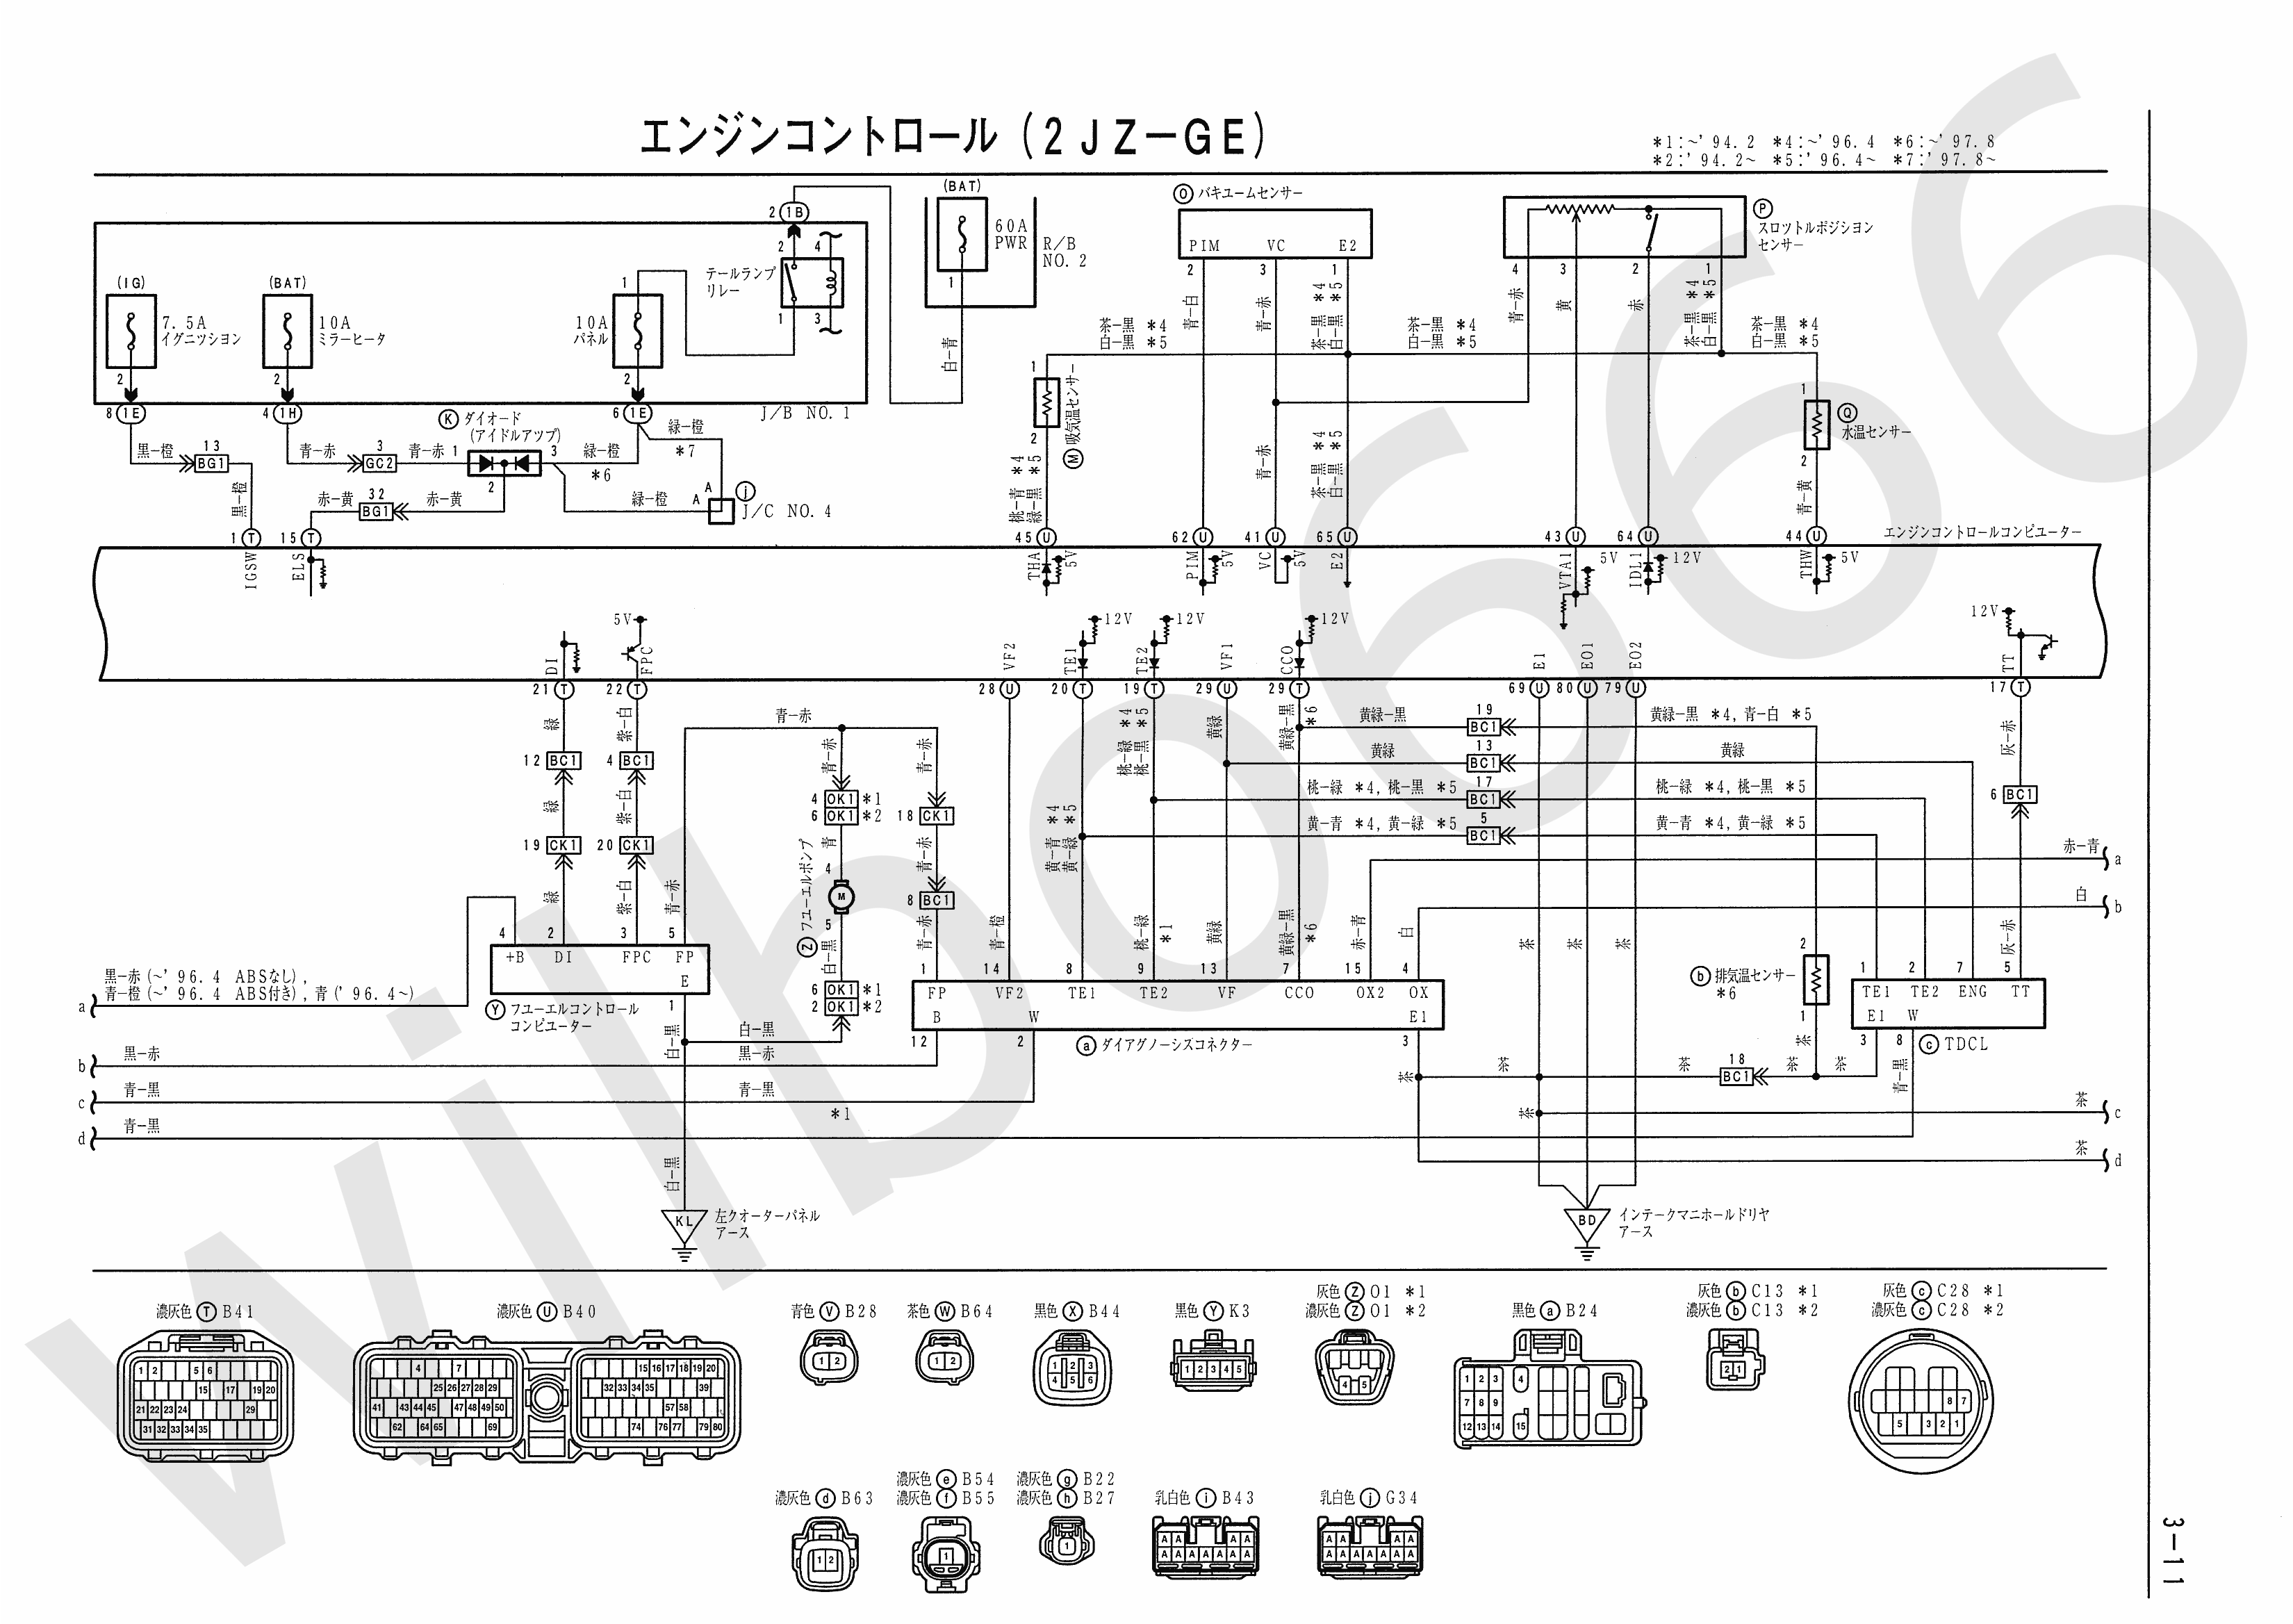 JZA80 Electrical Wiring Diagram 6742505 3 11?ssl=1 toyota ipsum wiring diagram toyota wiring diagrams instruction jzx100 wiring diagram at creativeand.co